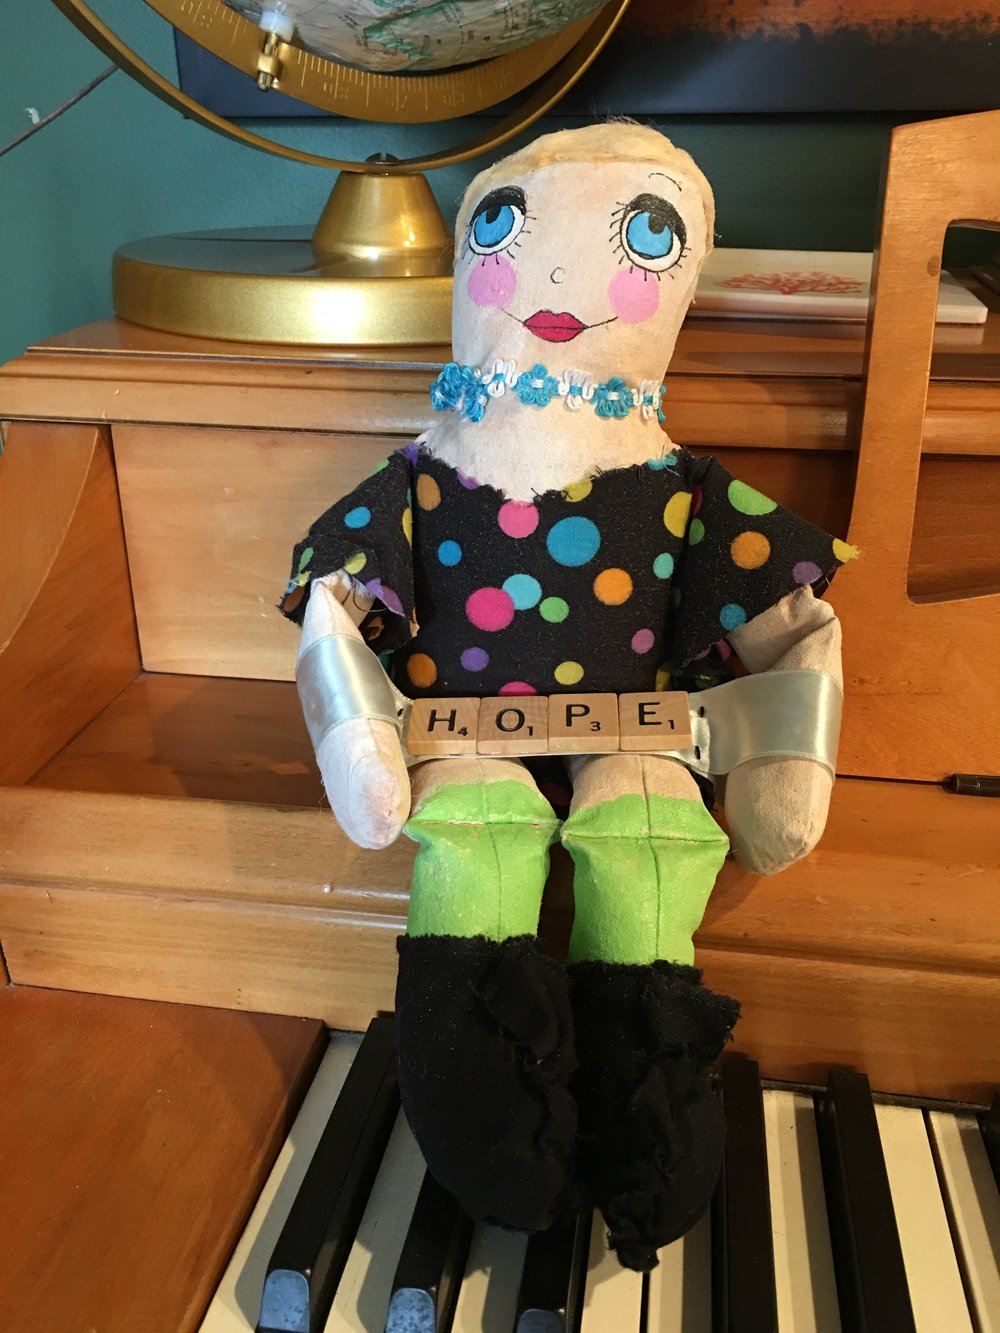 I found this in my mailbox about one hour after I wrote this post, I guess Breast Cancer is totally inspiring art! Both the painting above and the doll were lovingly made by my dear friend, Micki Rongve!